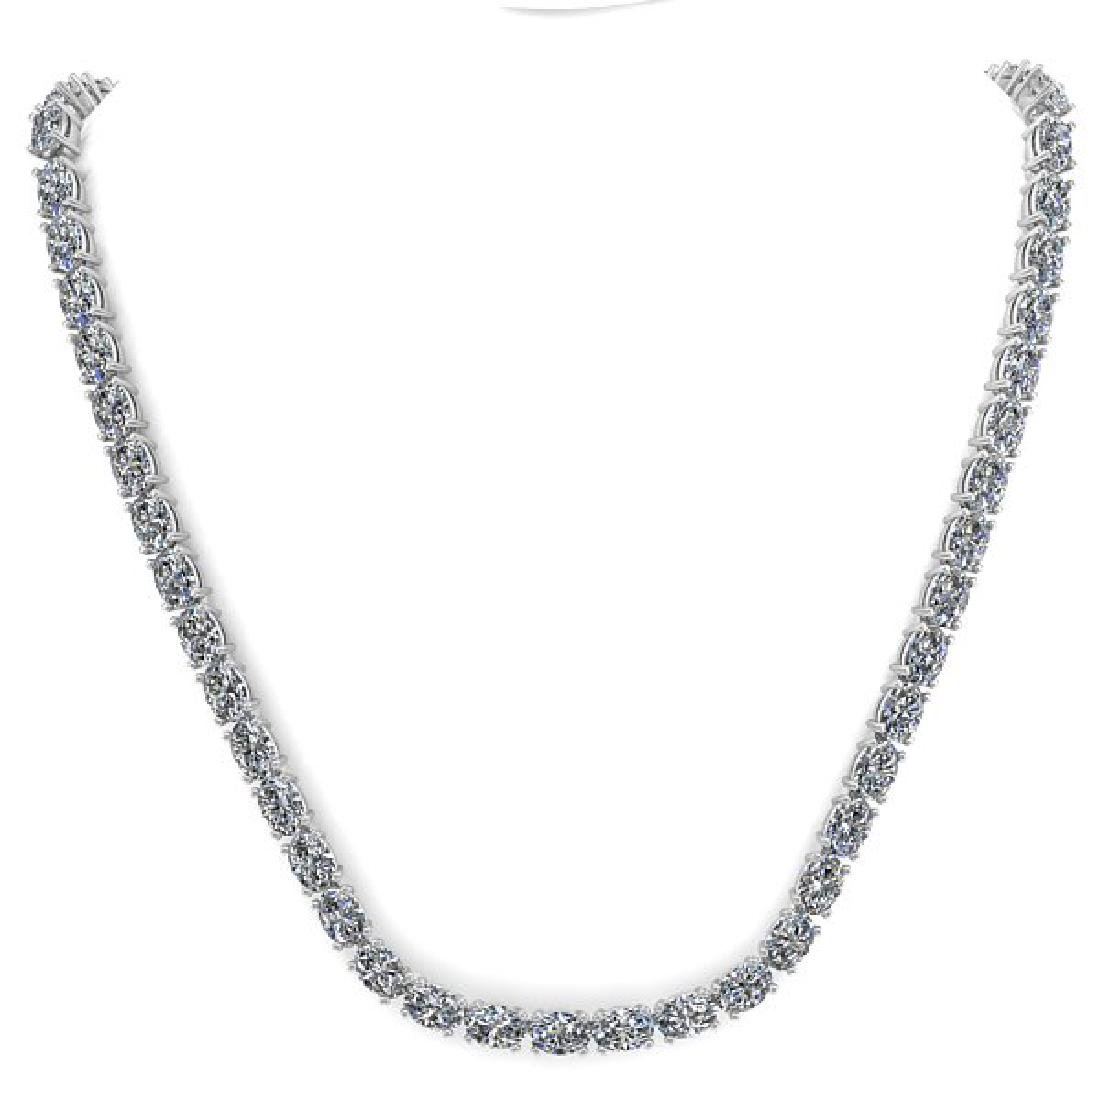 30 CTW Oval Cut Certified SI Diamond Necklace 14K White - 2